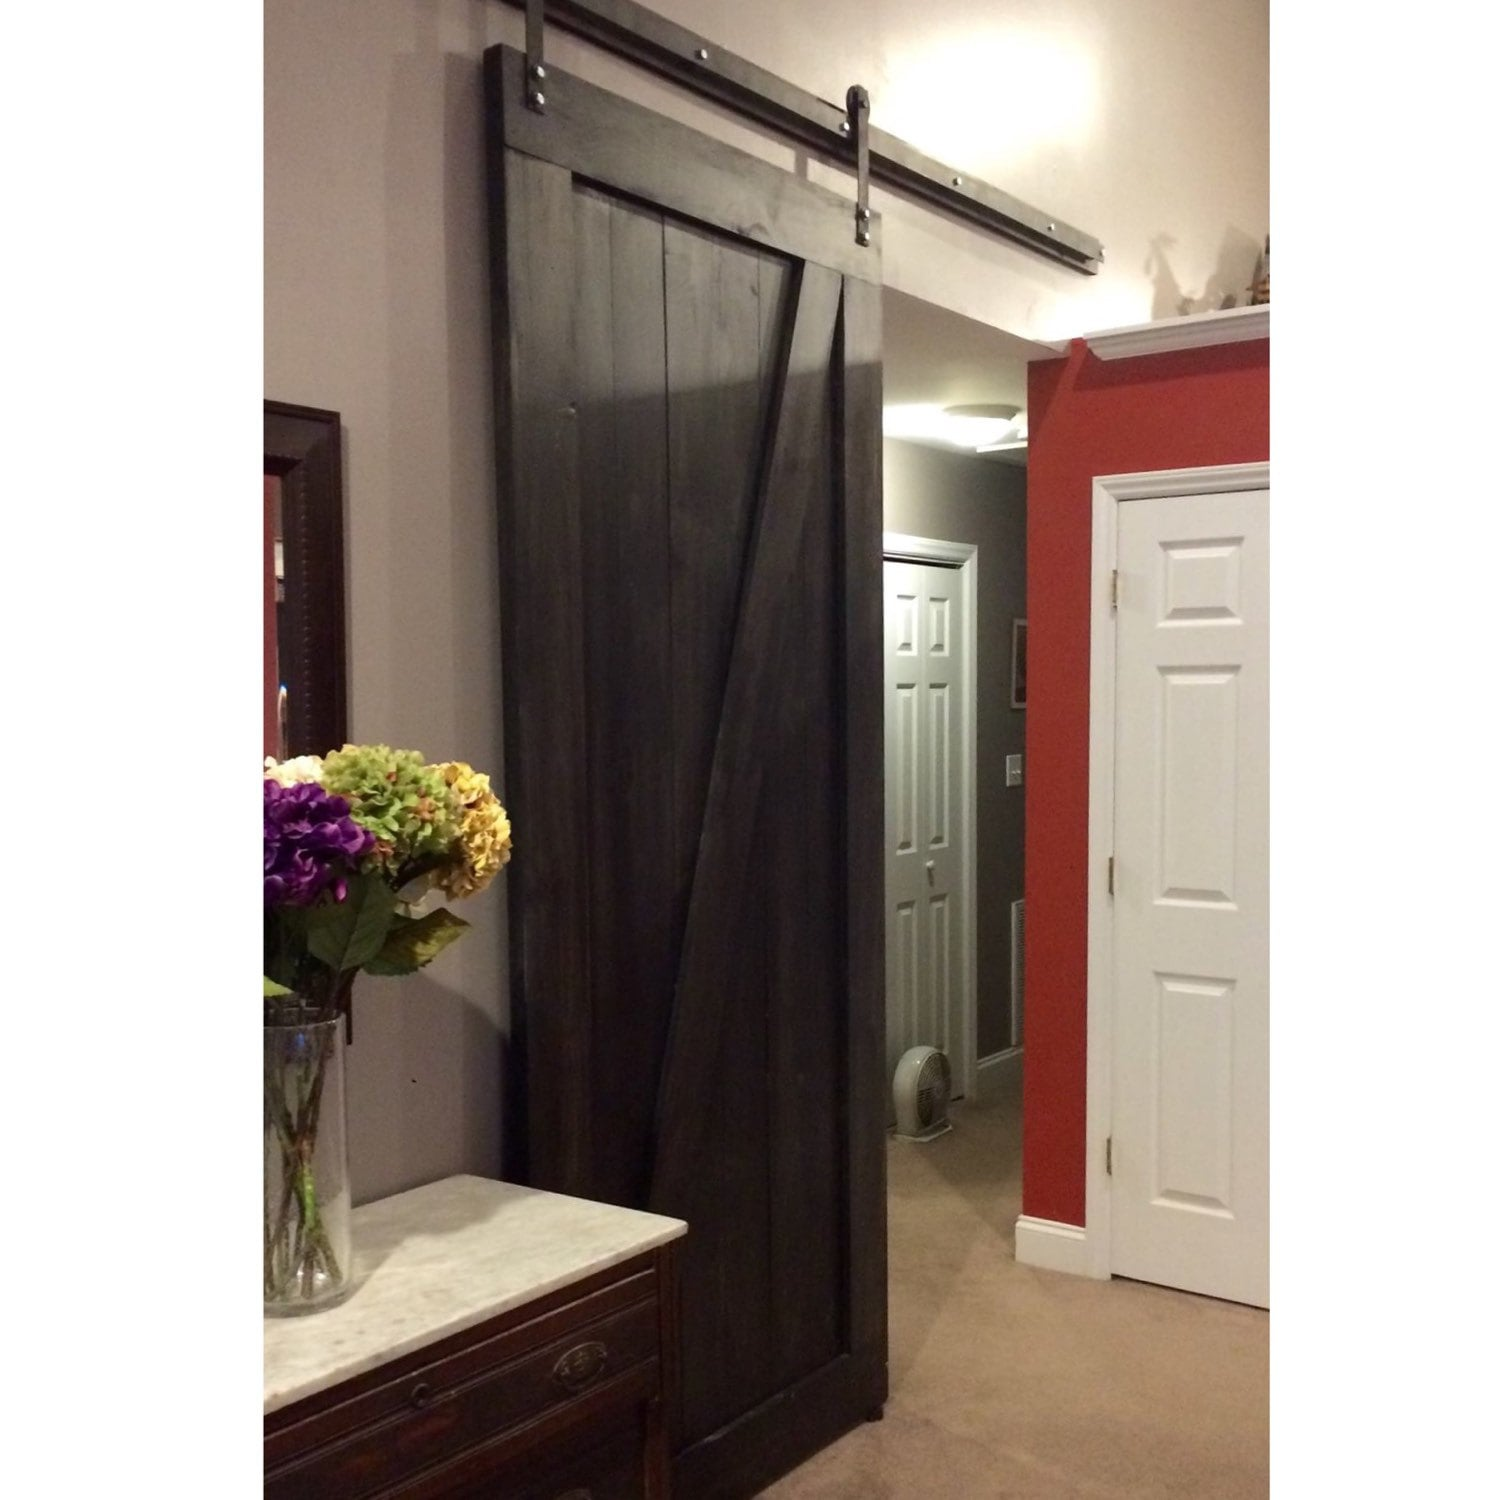 door hardware buy sliding pantry spectacular out barn pull full ideas at for doors in lowes home no cart kitchen of barns size